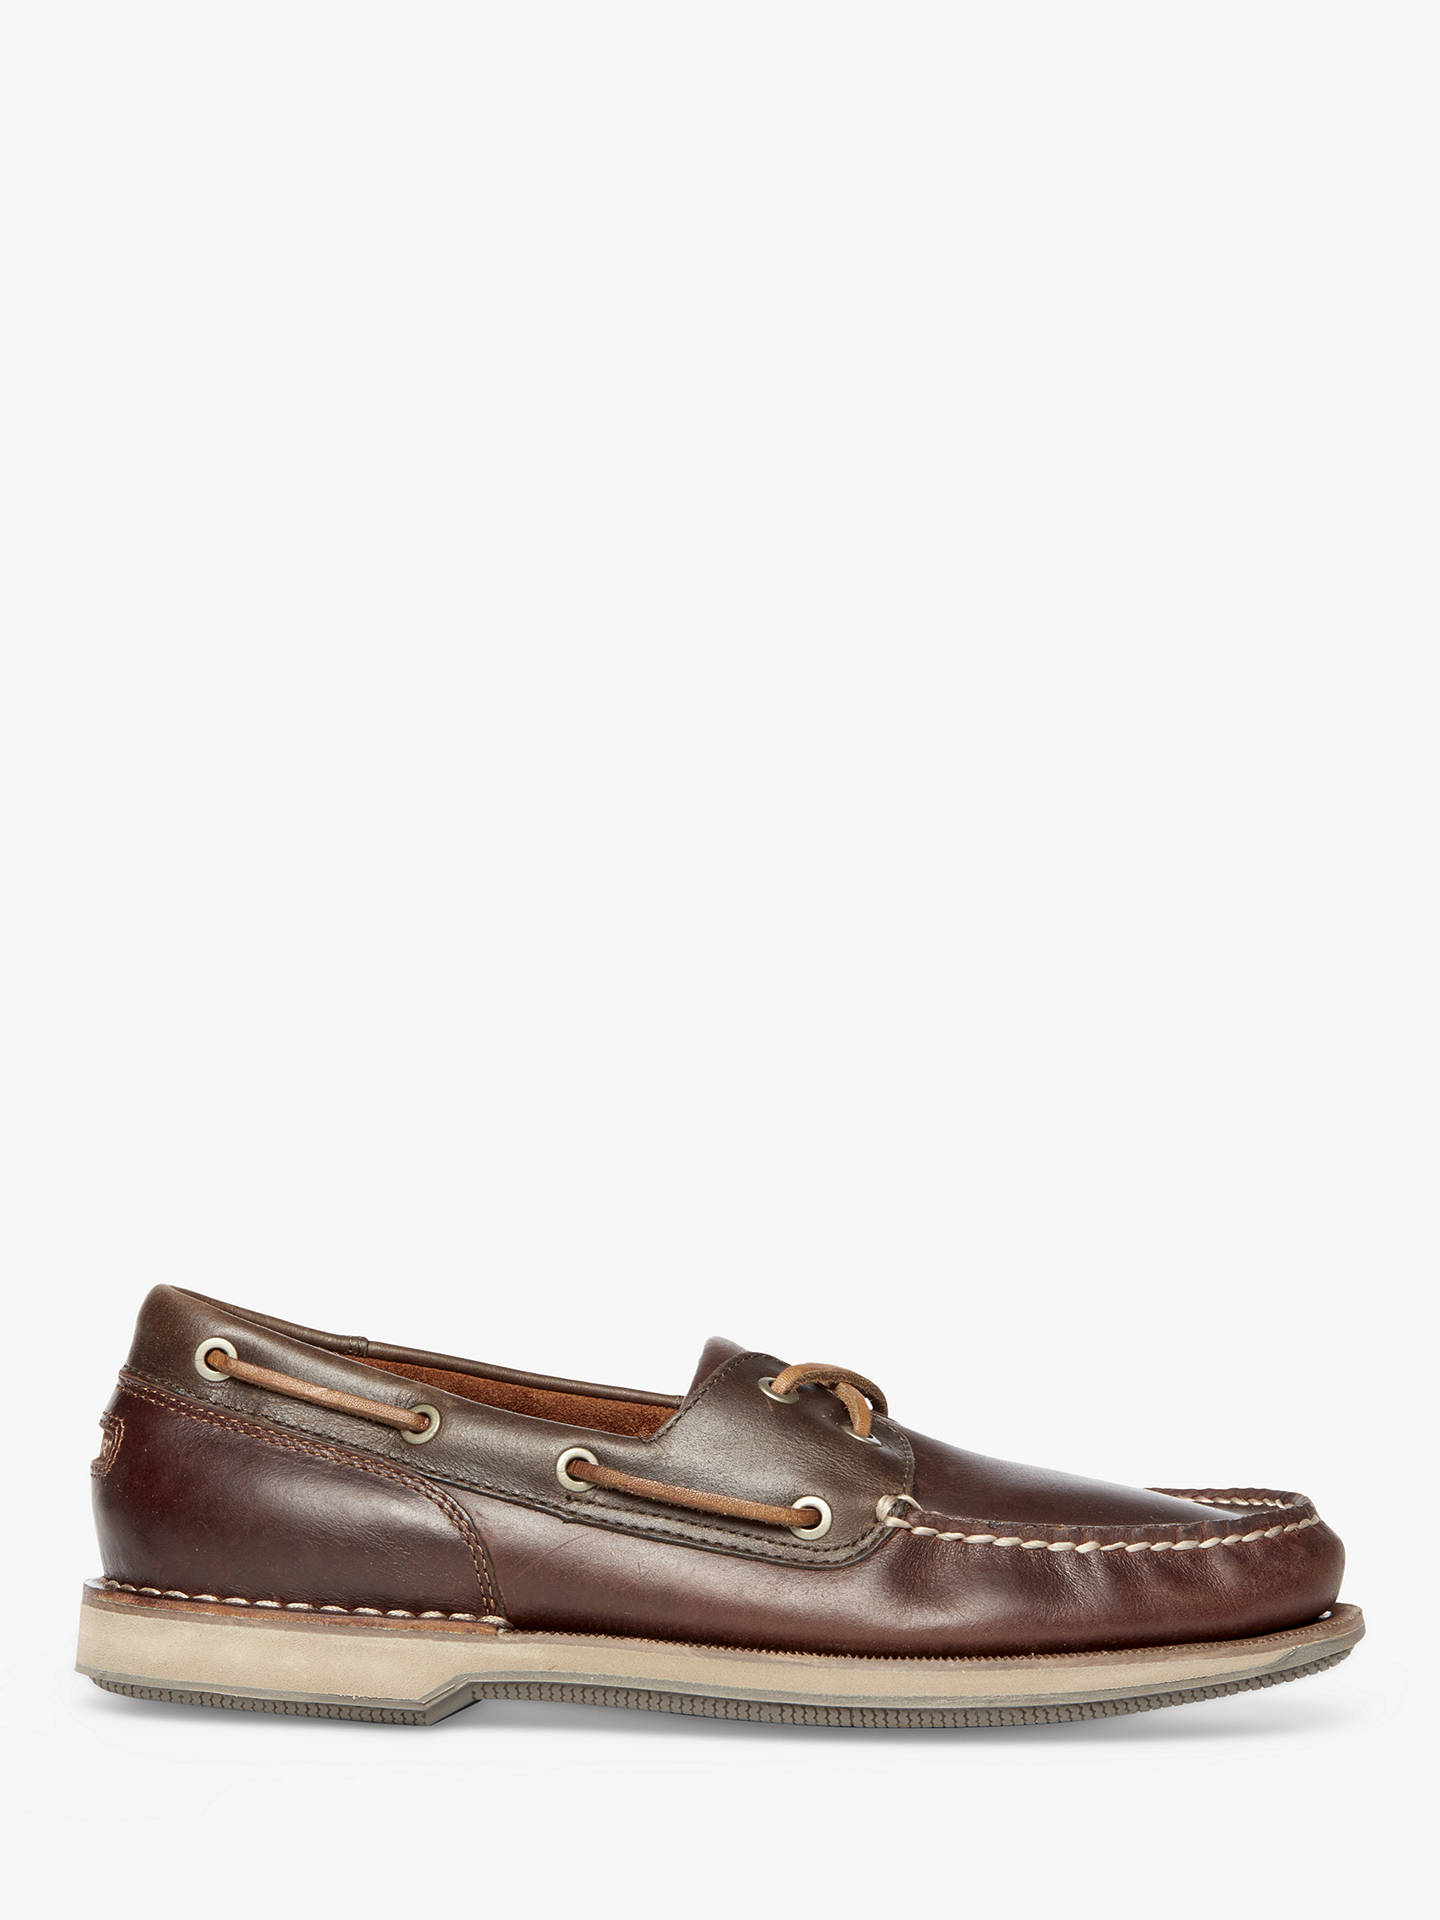 79f7290d35 Rockport Perth Boat Shoes at John Lewis   Partners